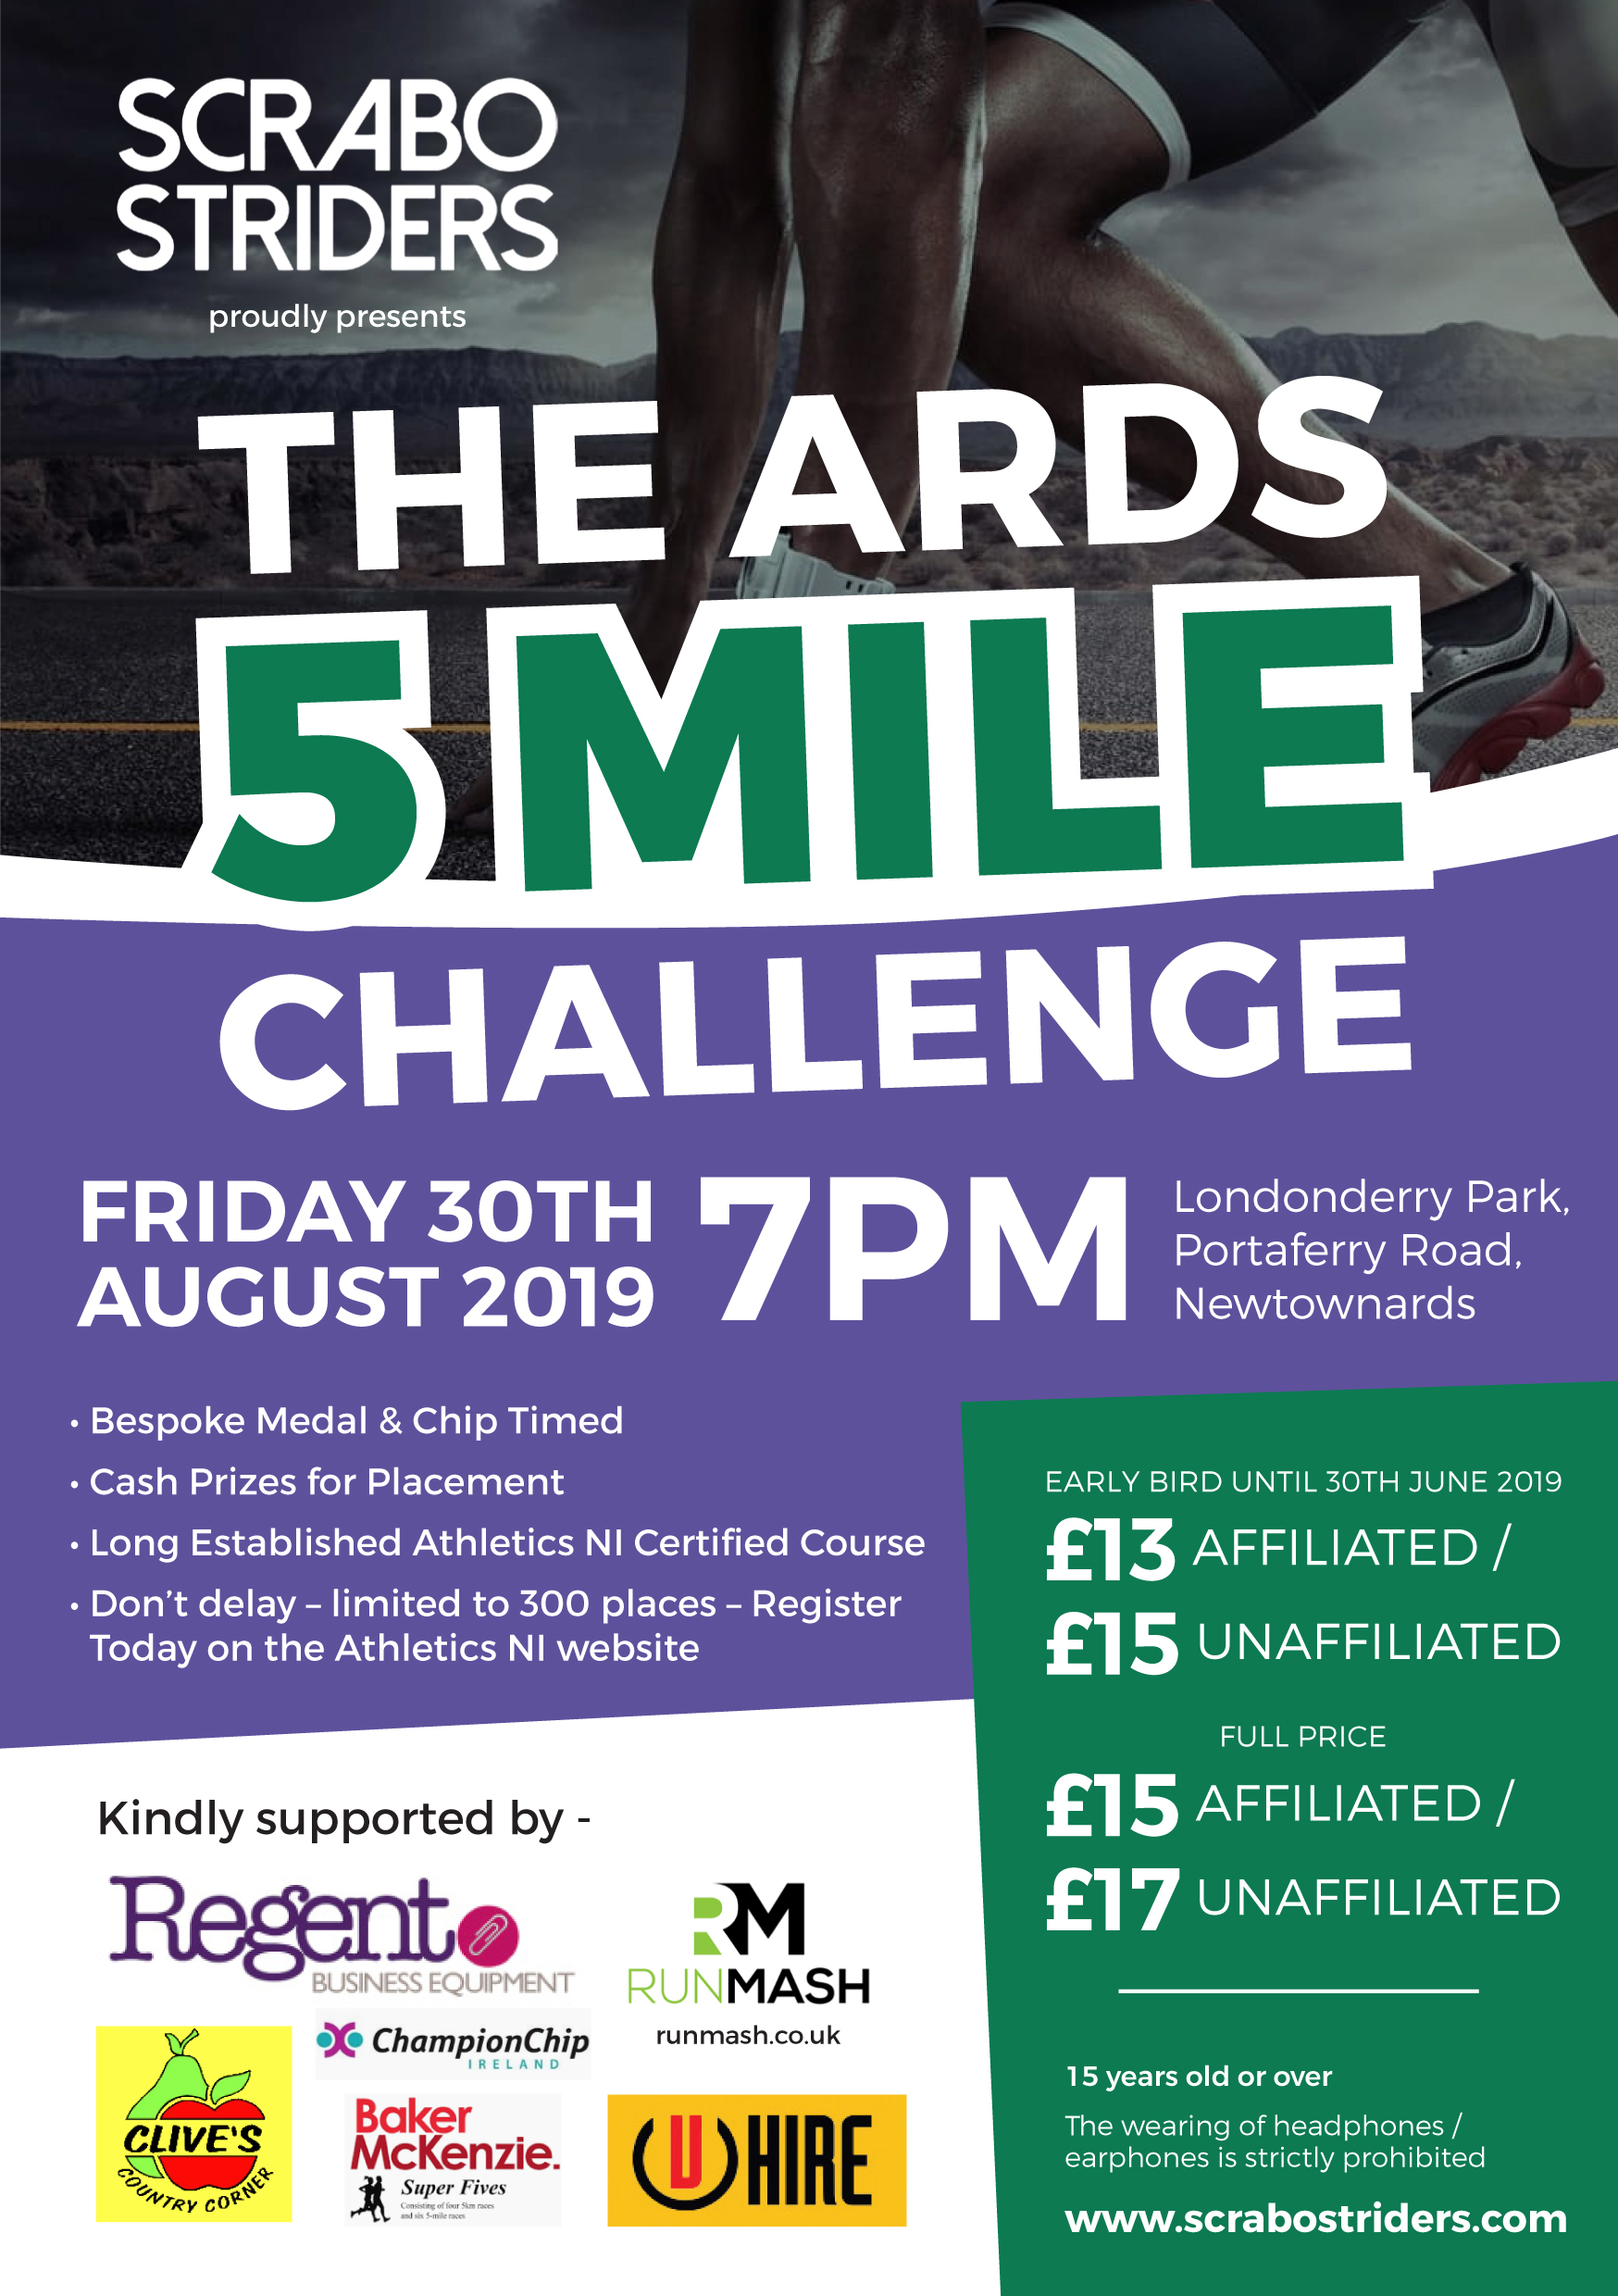 Scrabo Striders running club are very pleased to announce that this long-established race will return on Friday 30th August at 7pm.